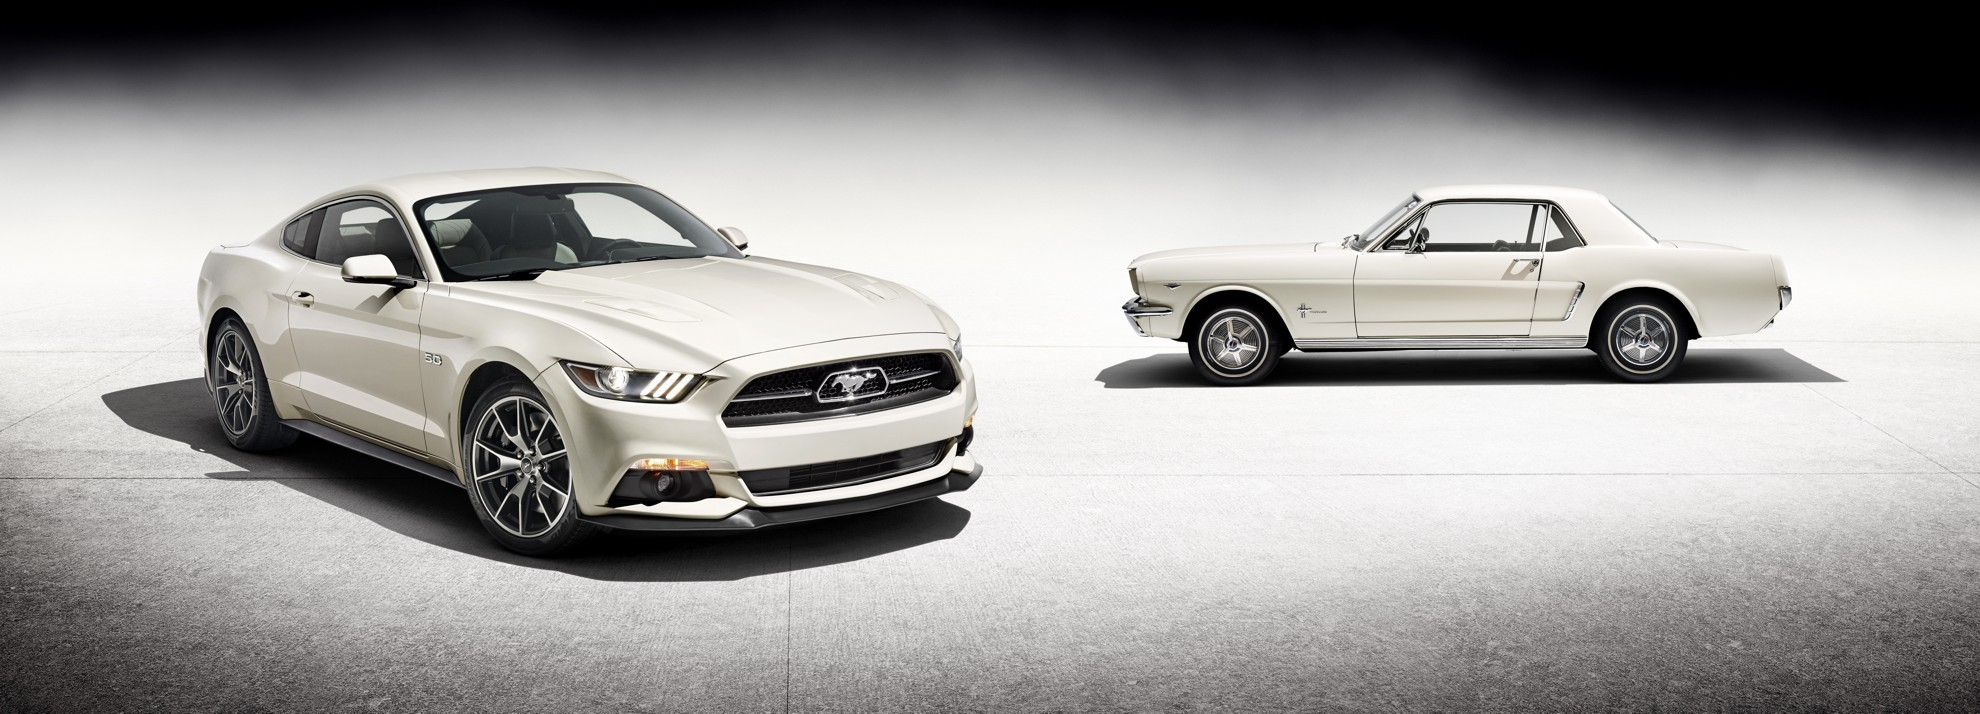 2015_Ford_Mustang_now_on_Sale